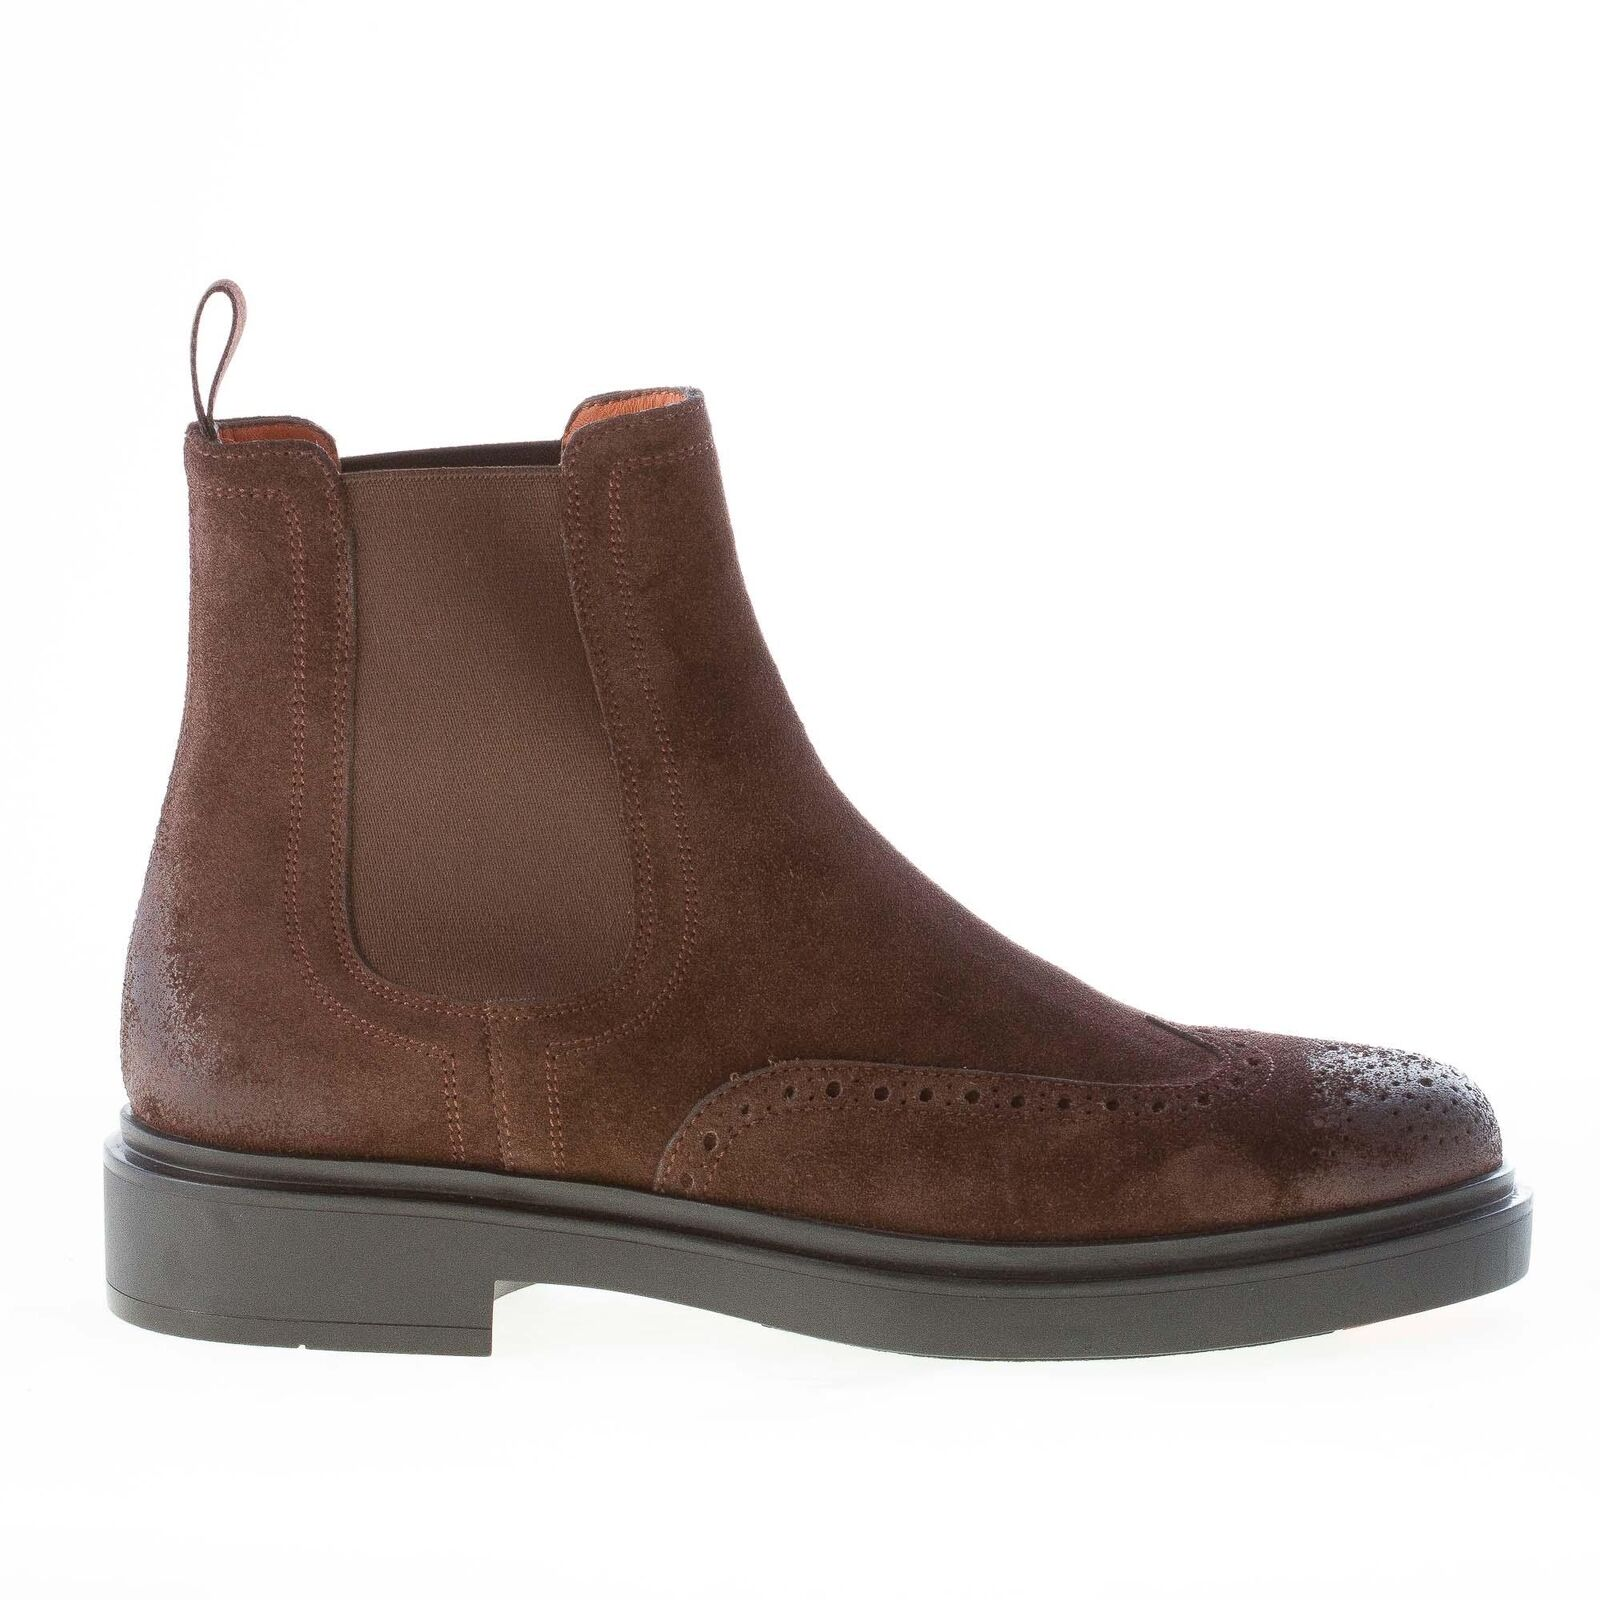 SANTONI chaussures homme Chaussure s Marron    suede wingtip chelsea boot made in Italy 7a59e5